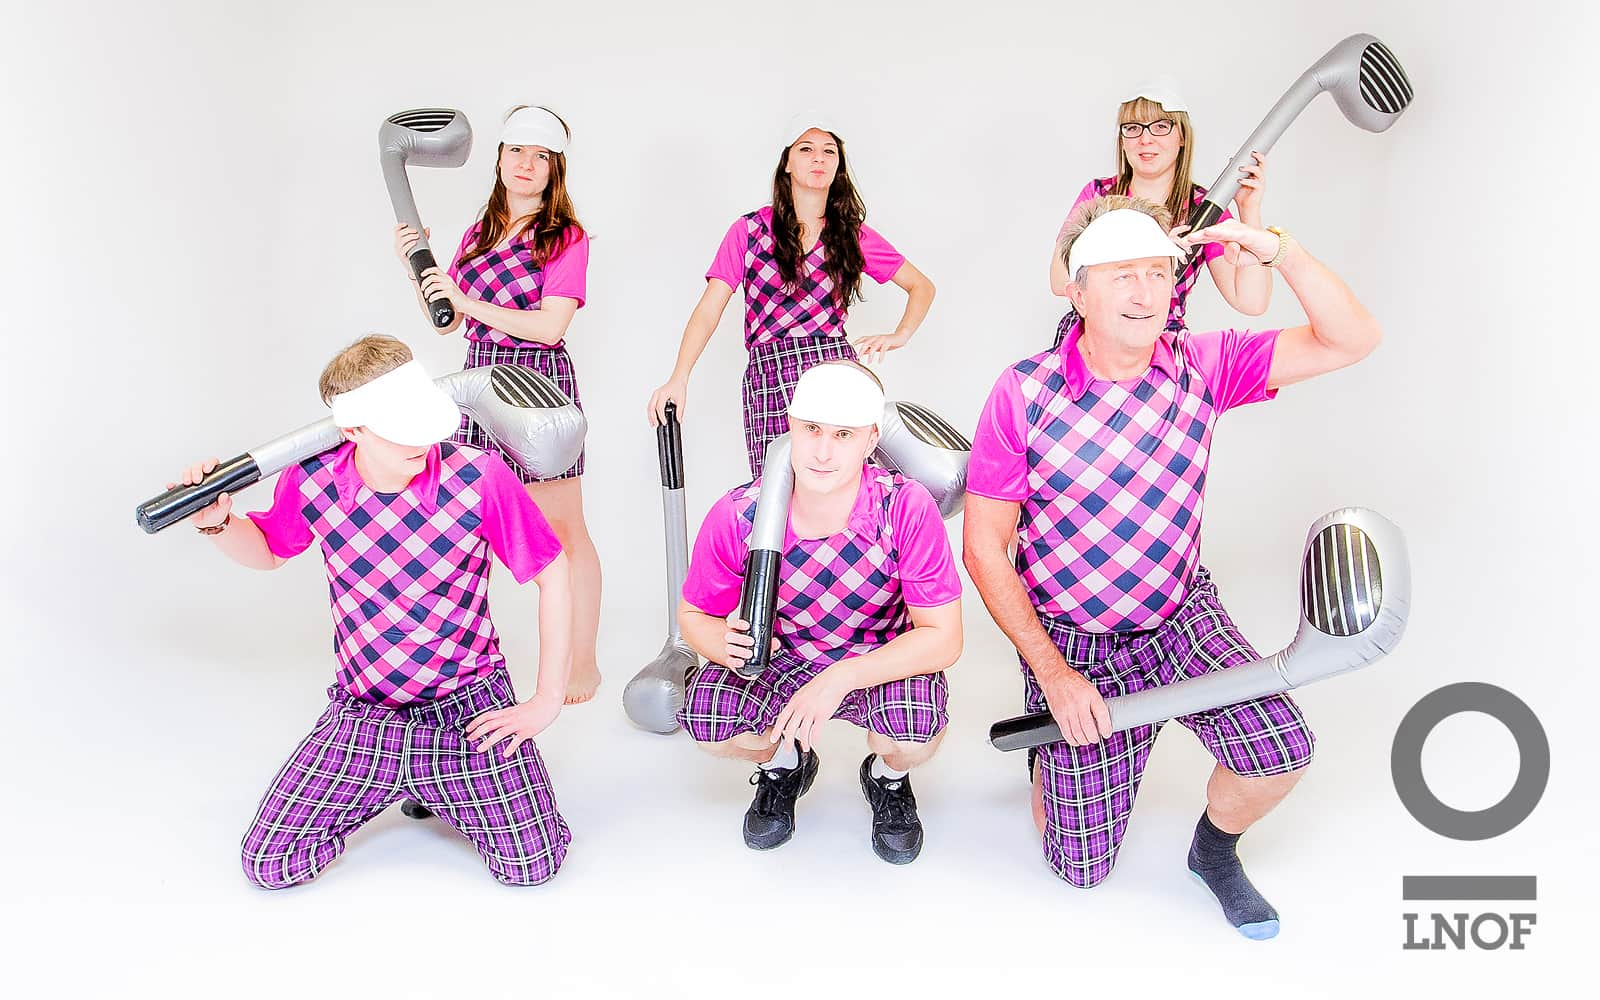 Golfers try and create a serious look for the camera in their outfits